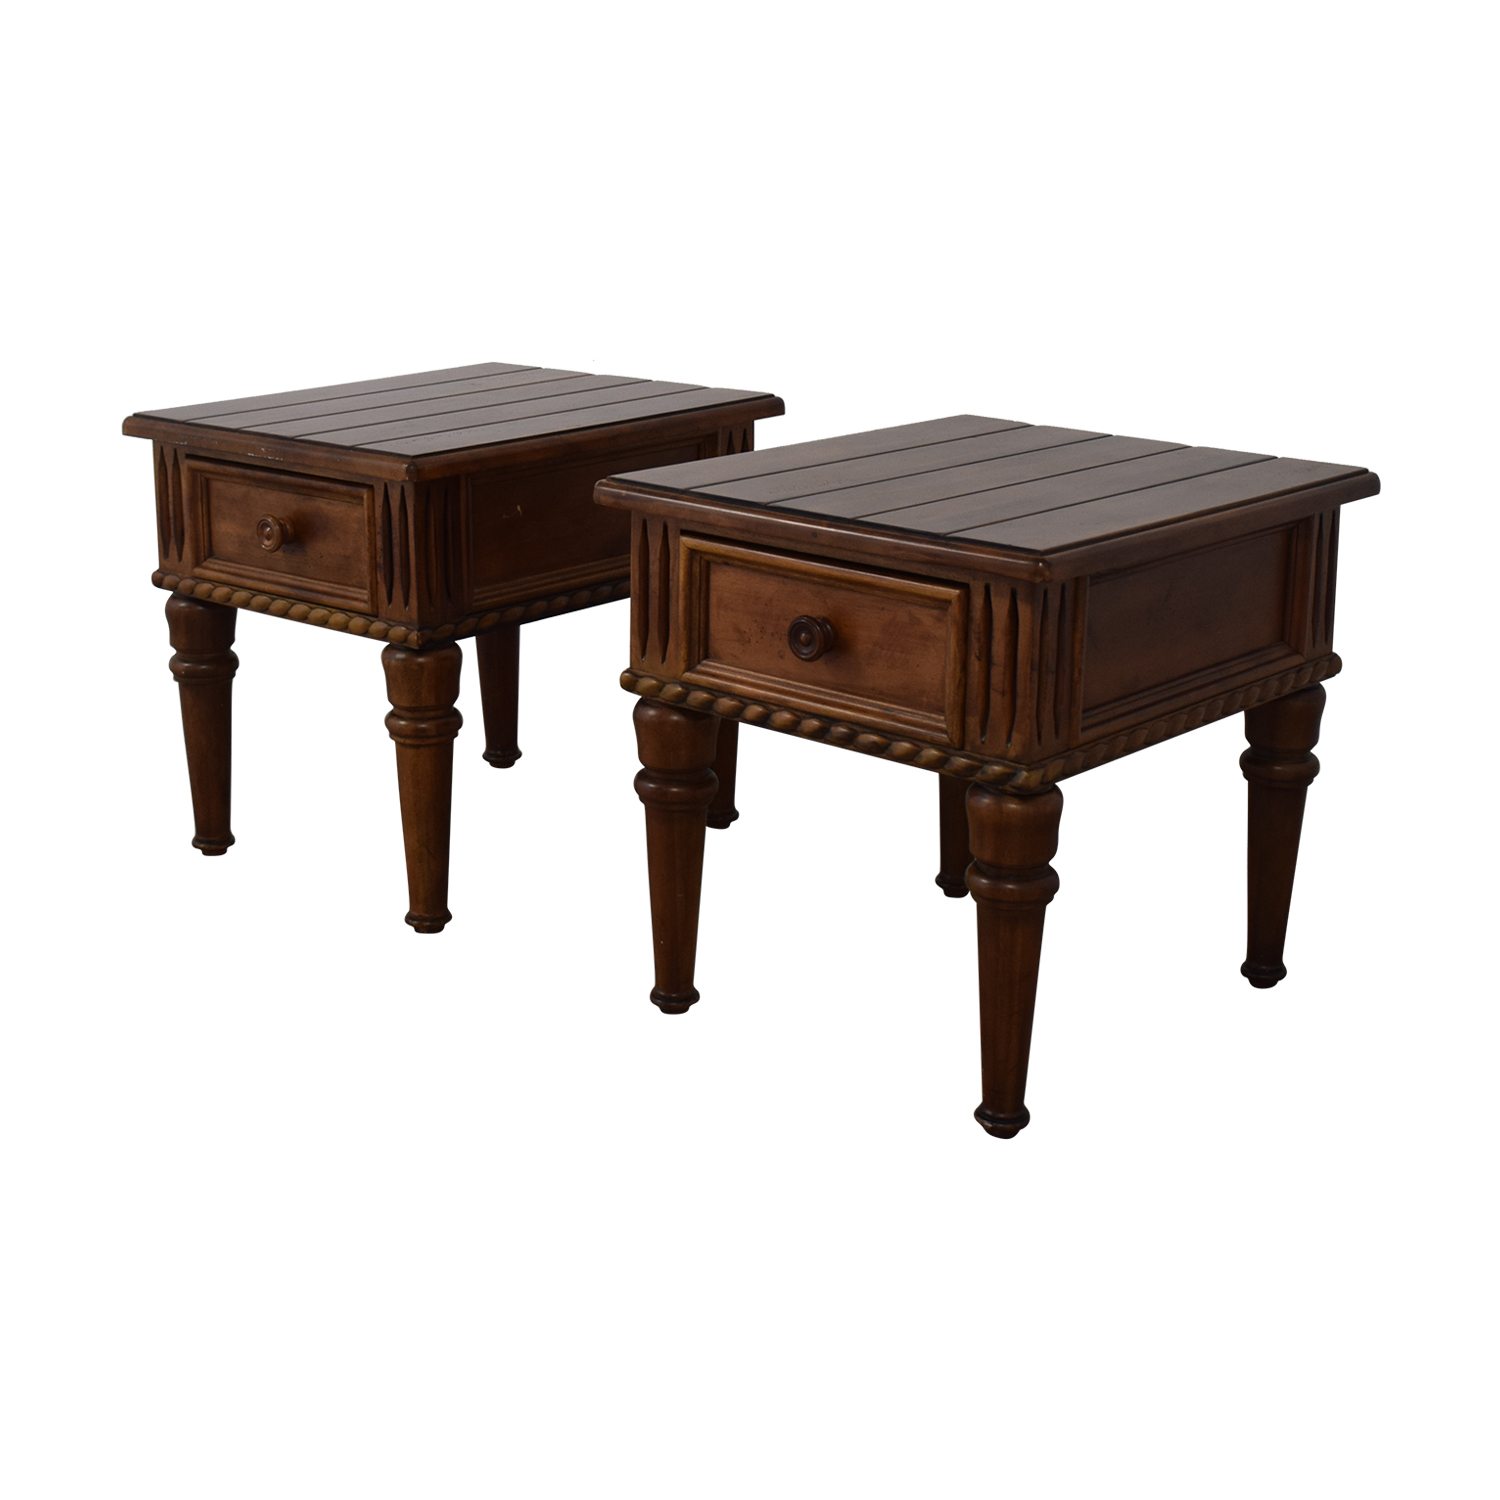 Thomasville Thomasville Ernest Hemingway Collection Single Drawer End Tables nj